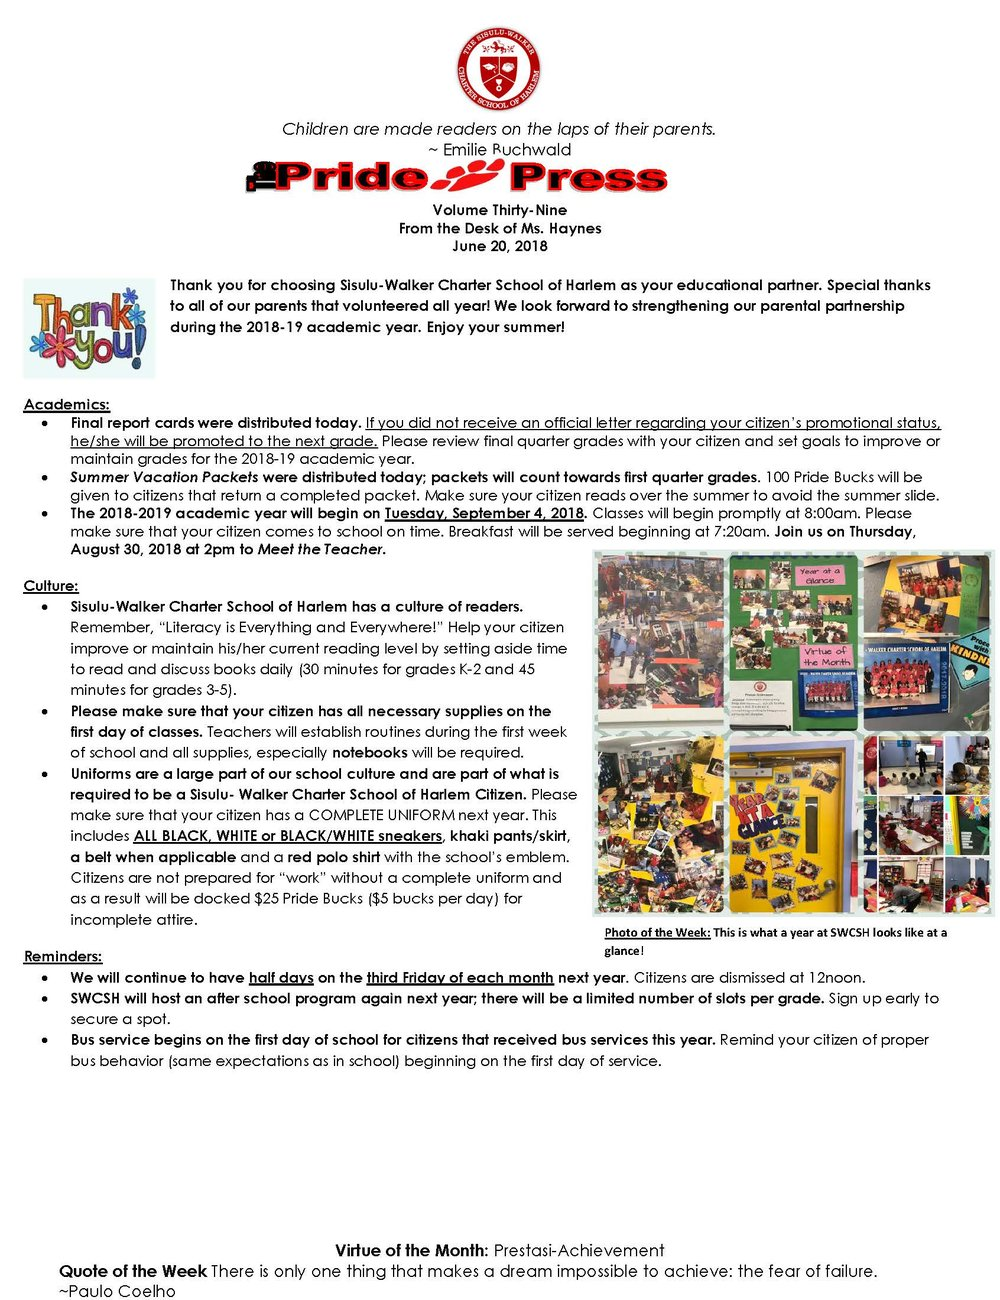 The Pride Press Volume 39.jpg